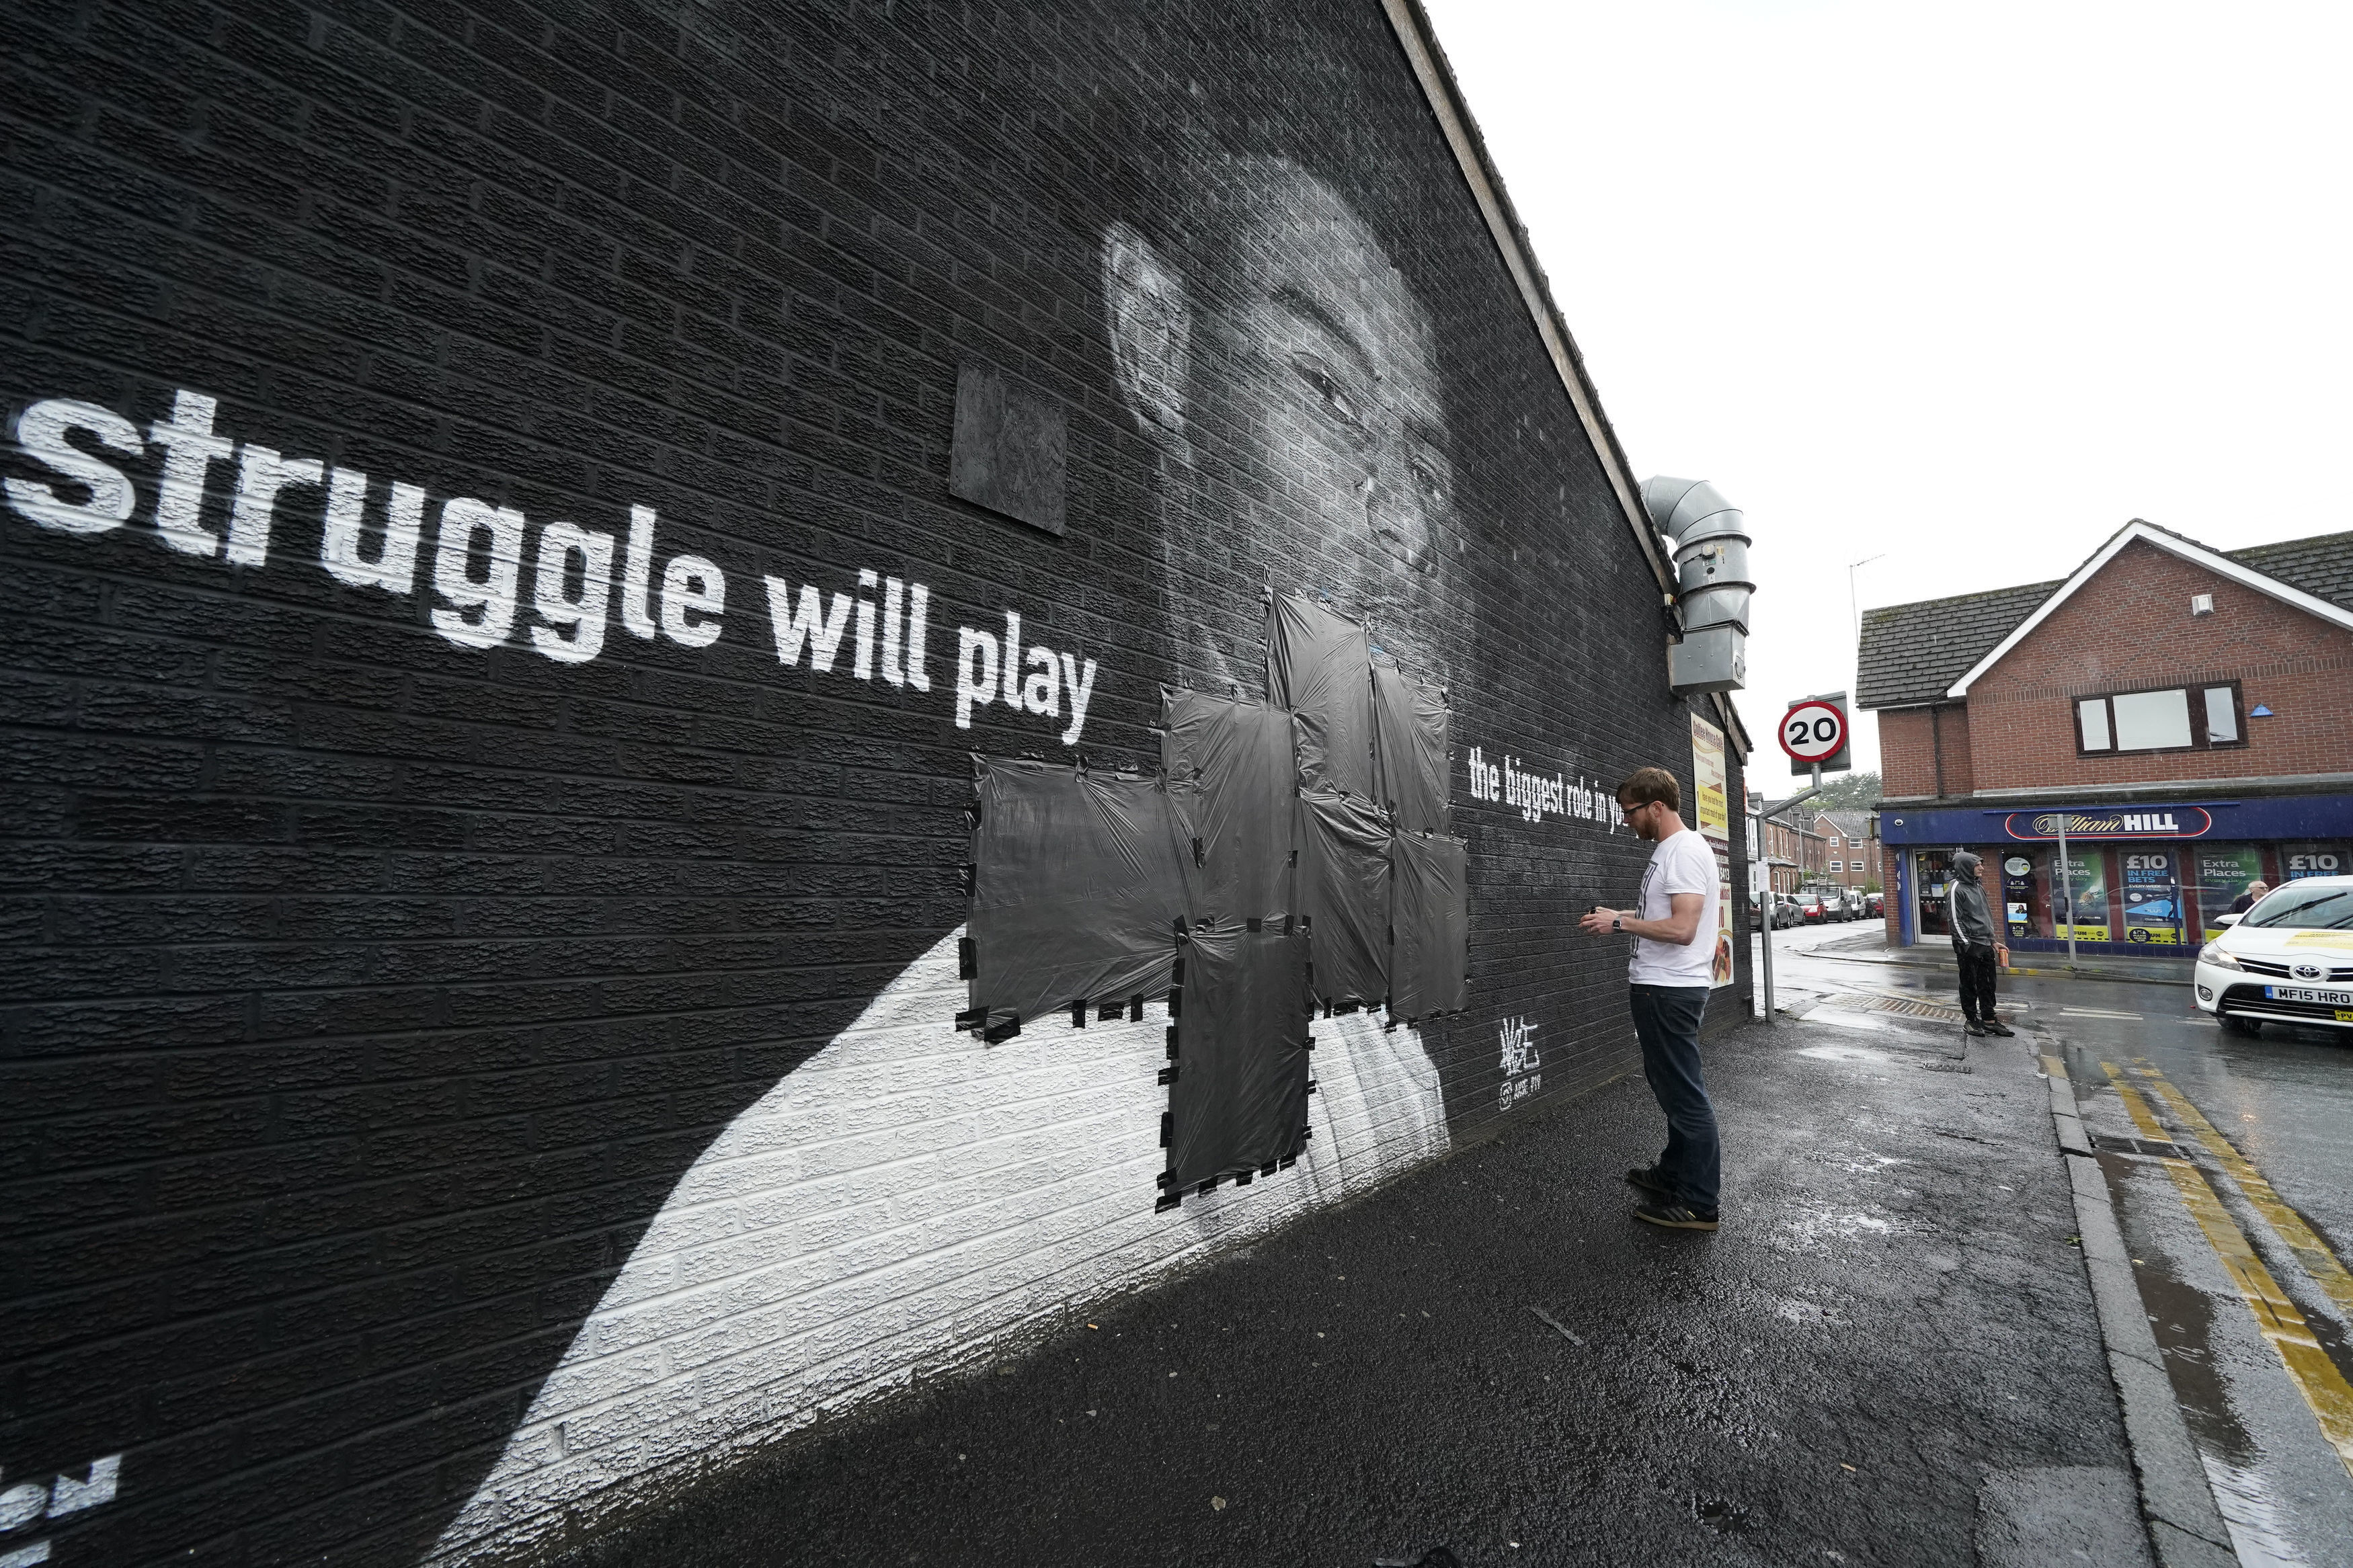 Ed Wellard tapes trash can liners across offensive wording on the mural of Manchester United striker and England player Marcus Rashford.